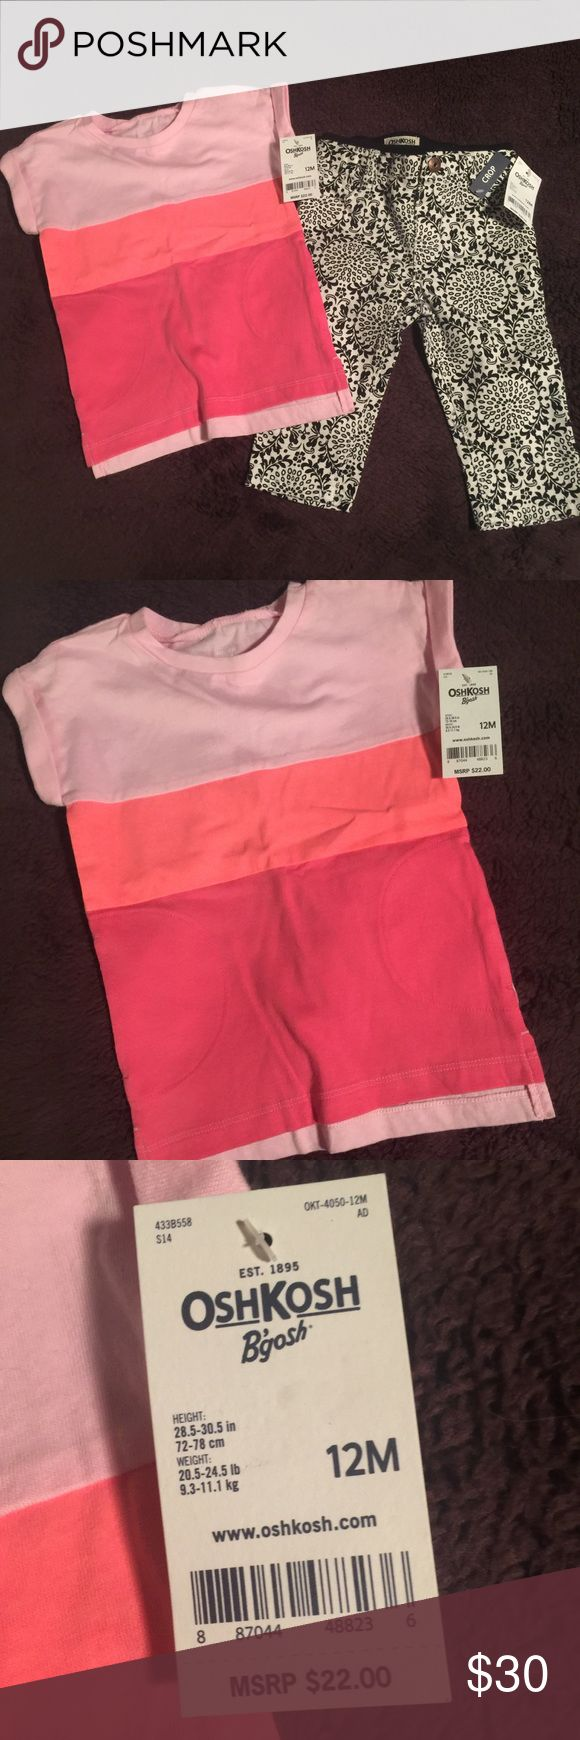 12 mo. girl clothing Brand new with tags. Both OshKosh B'gosh brand girls clothing; 12 mo. Pants are crop length and made of a durable denim like material with a dark blue and white pattern. Pink short sleeve top with pockets. OshKosh B'gosh Matching Sets